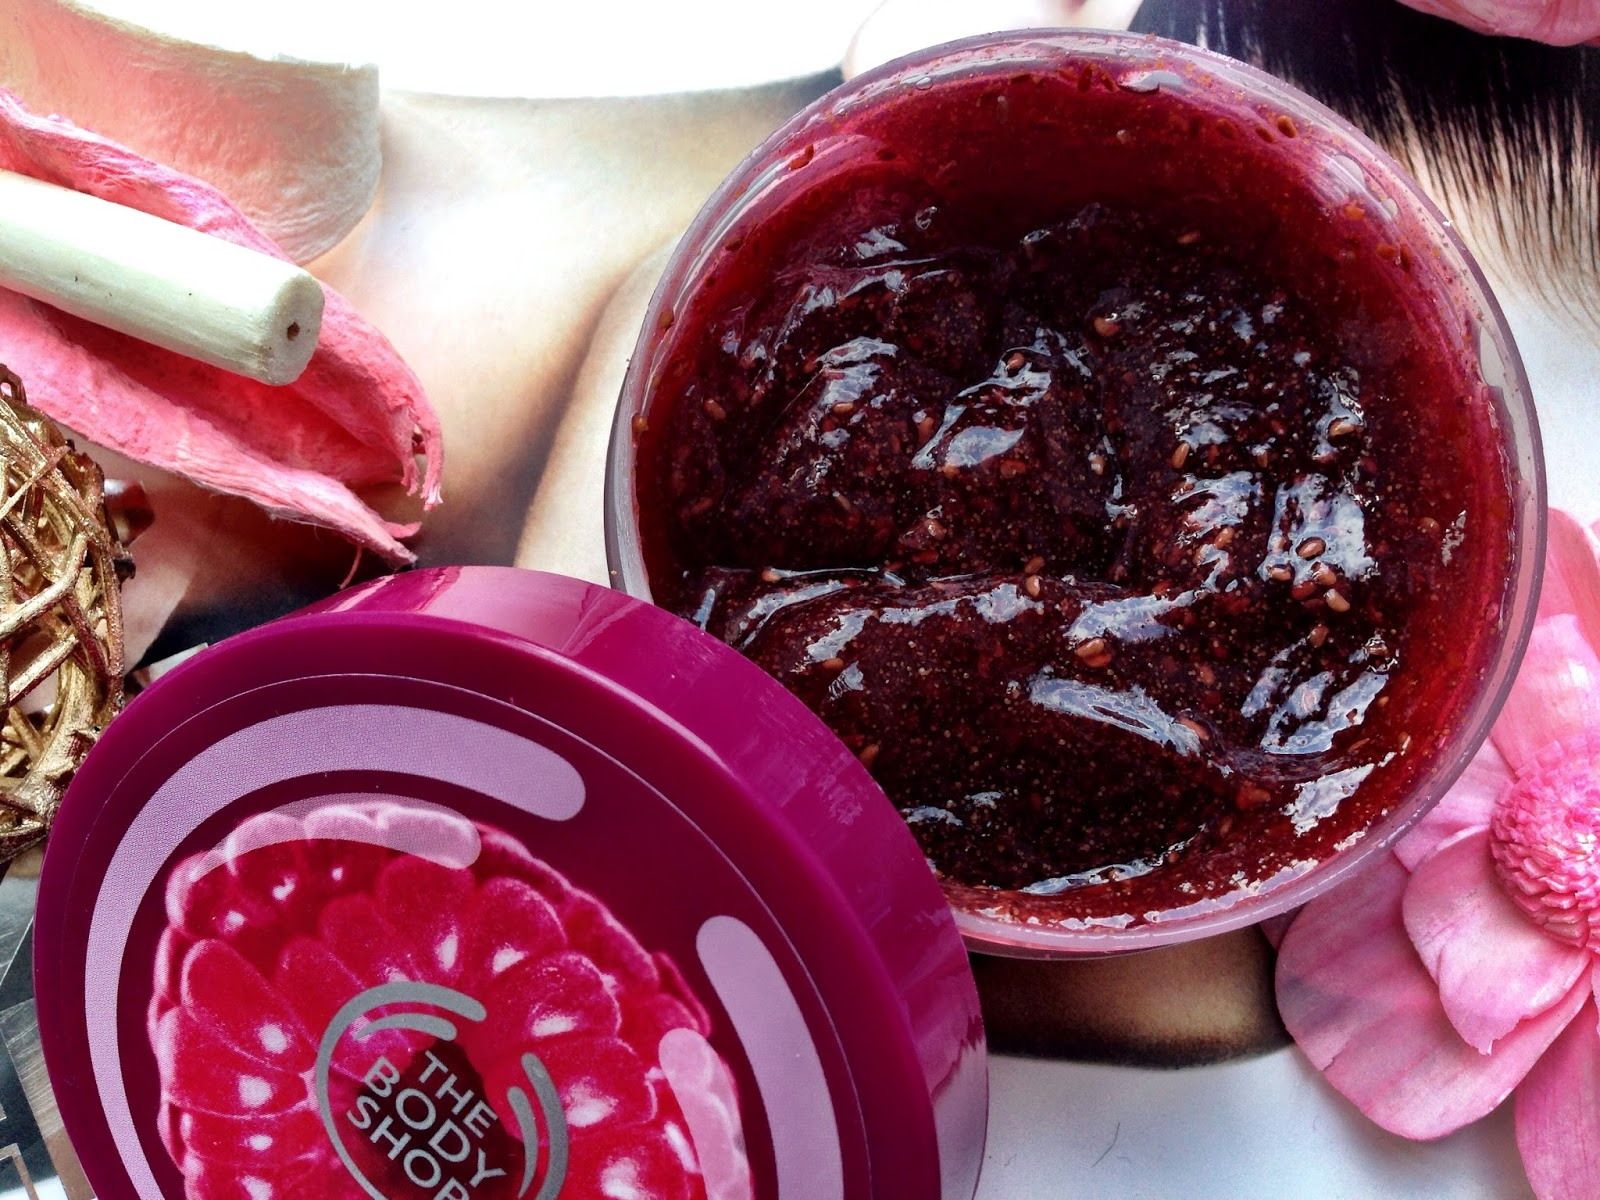 The Body Shop Raspberry Range Body Scrub